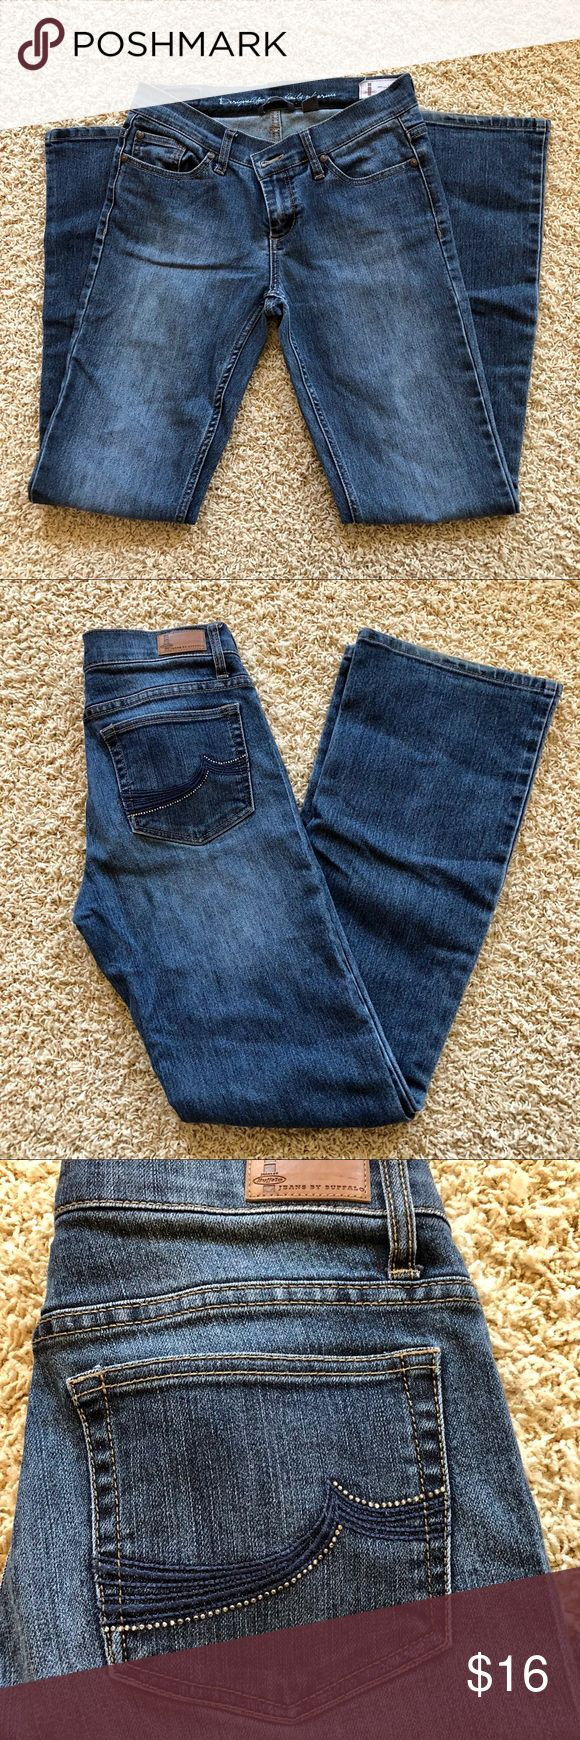 "Land is Bootcut Buffalo Jeans w/embellishment I by Buffalo Landis Bootcut Jeans. Jeans feature a crystal embellishment on back pockets.   Size 27 (4) x 33""  Worn a few times, great condition. i jeans by Buffalo Jeans Boot Cut"